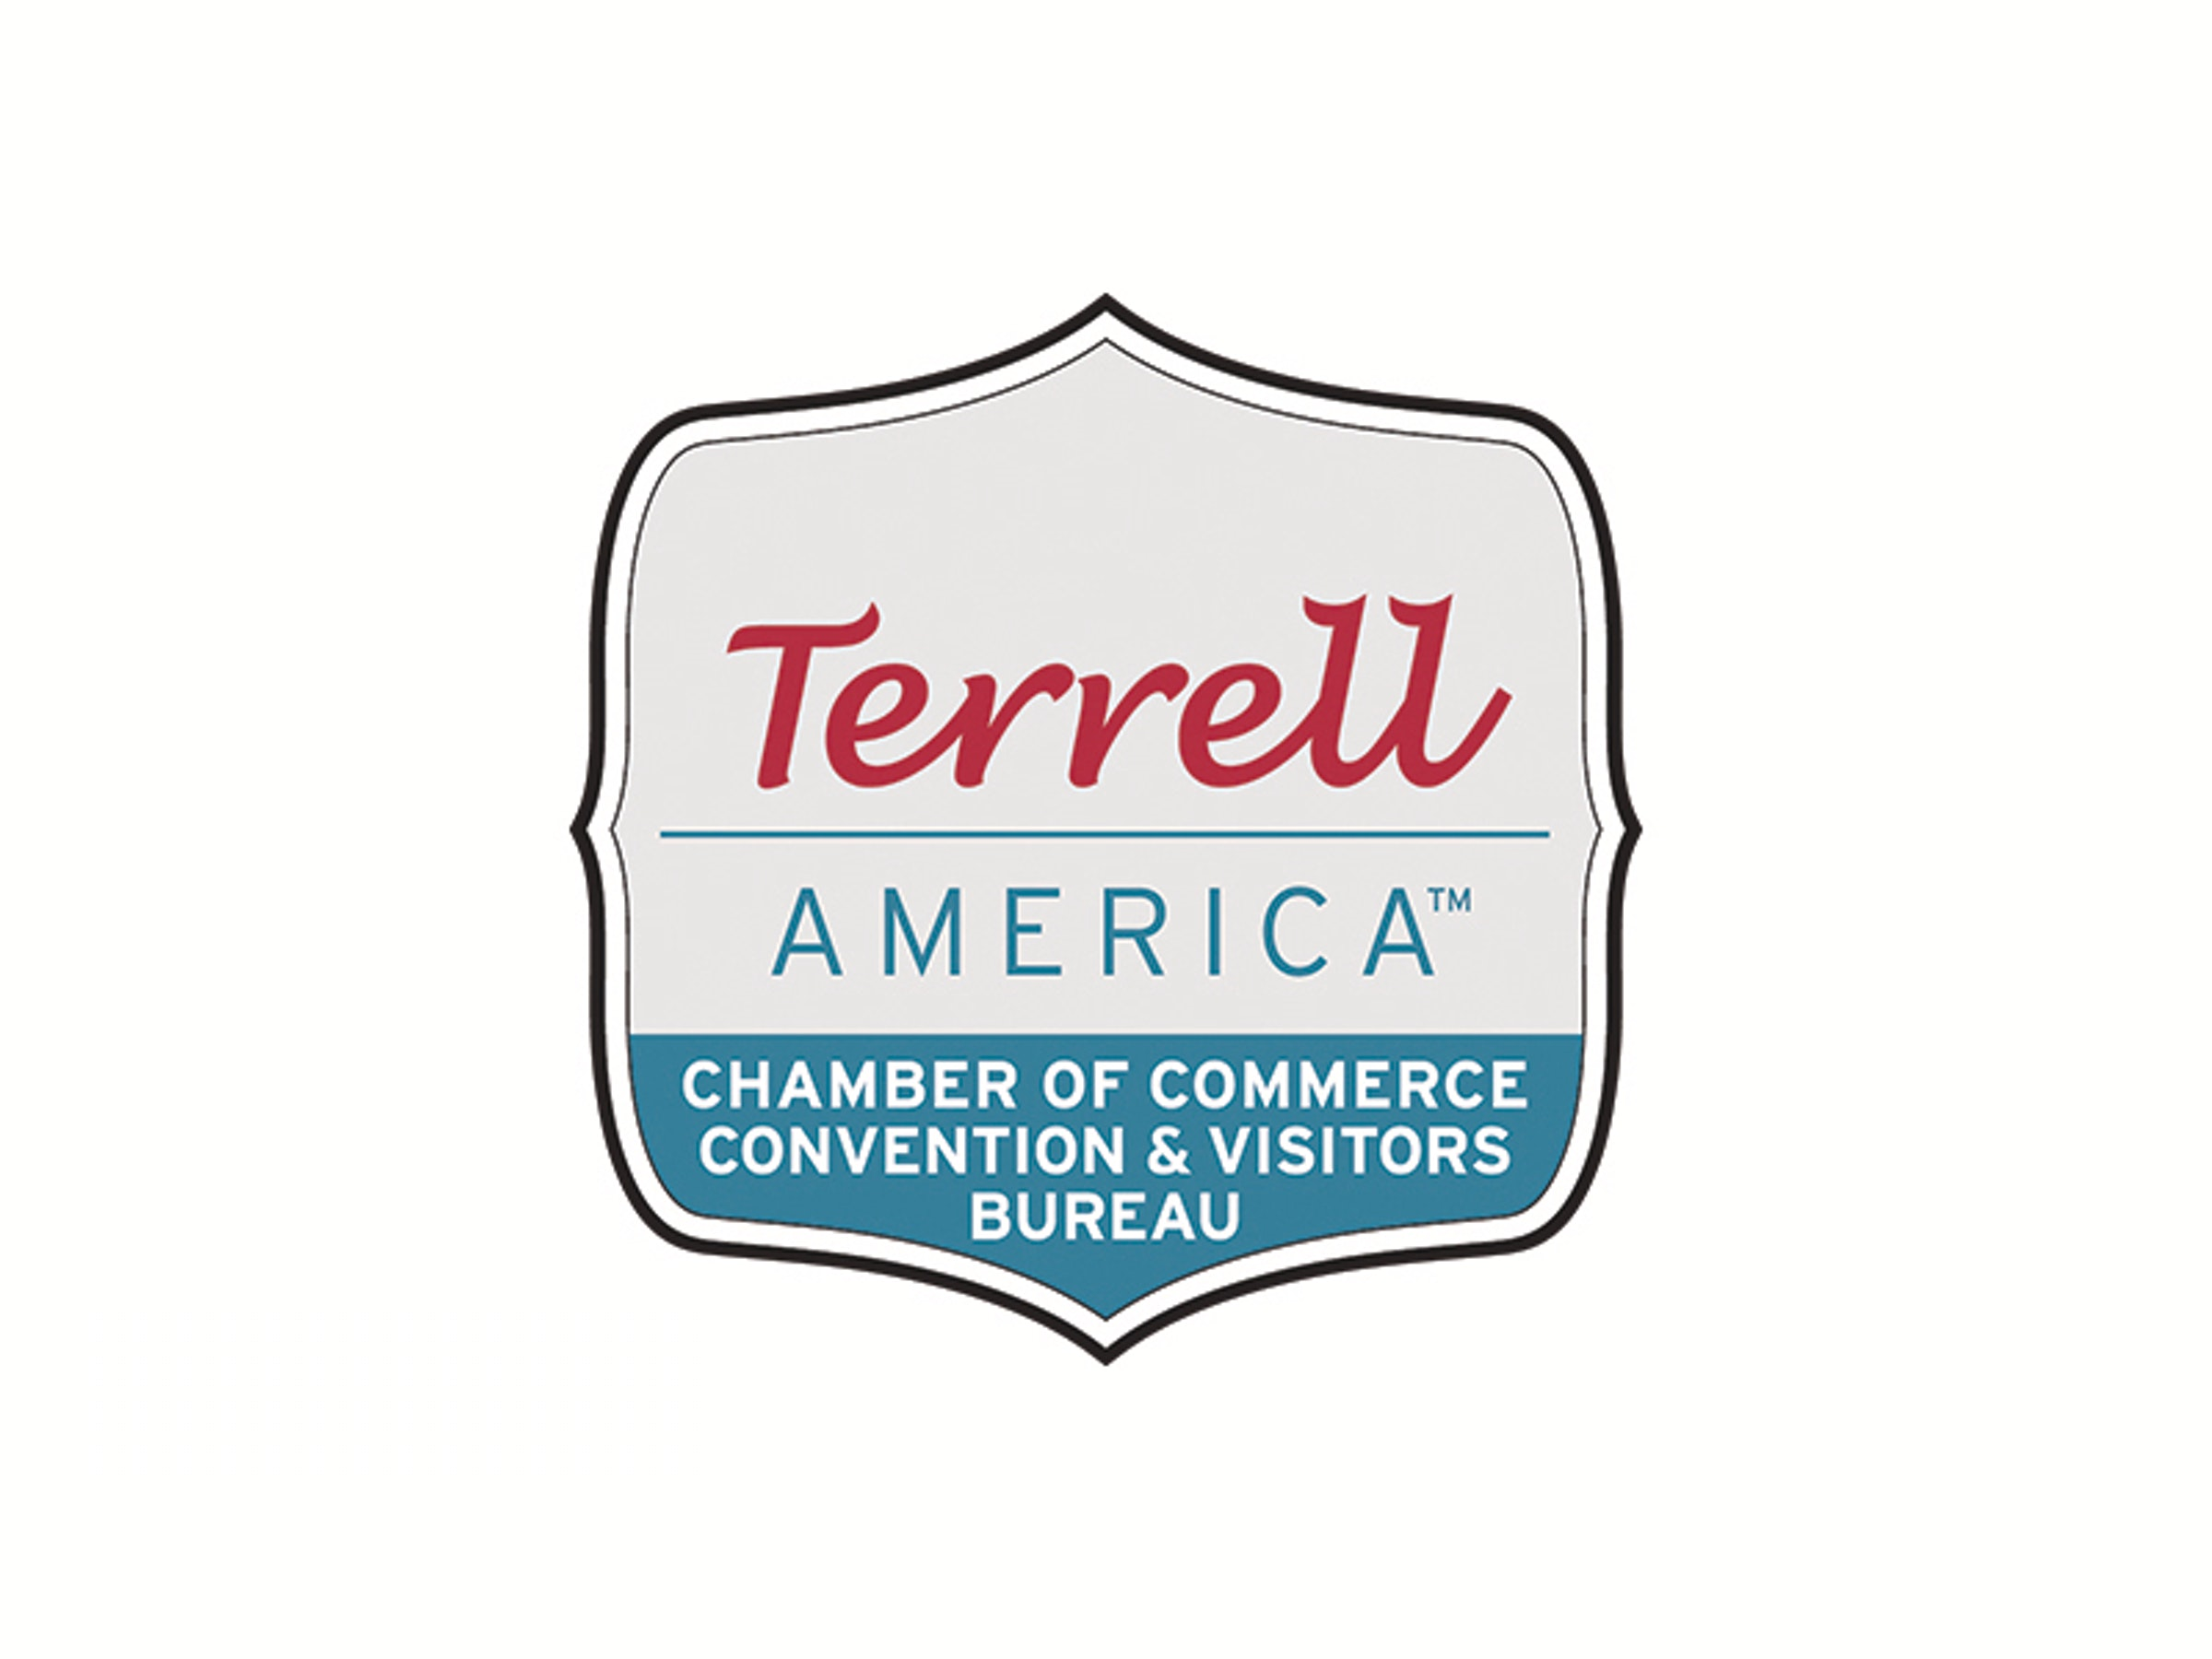 Terrell Chamber of Commerce in Beyond Dallas